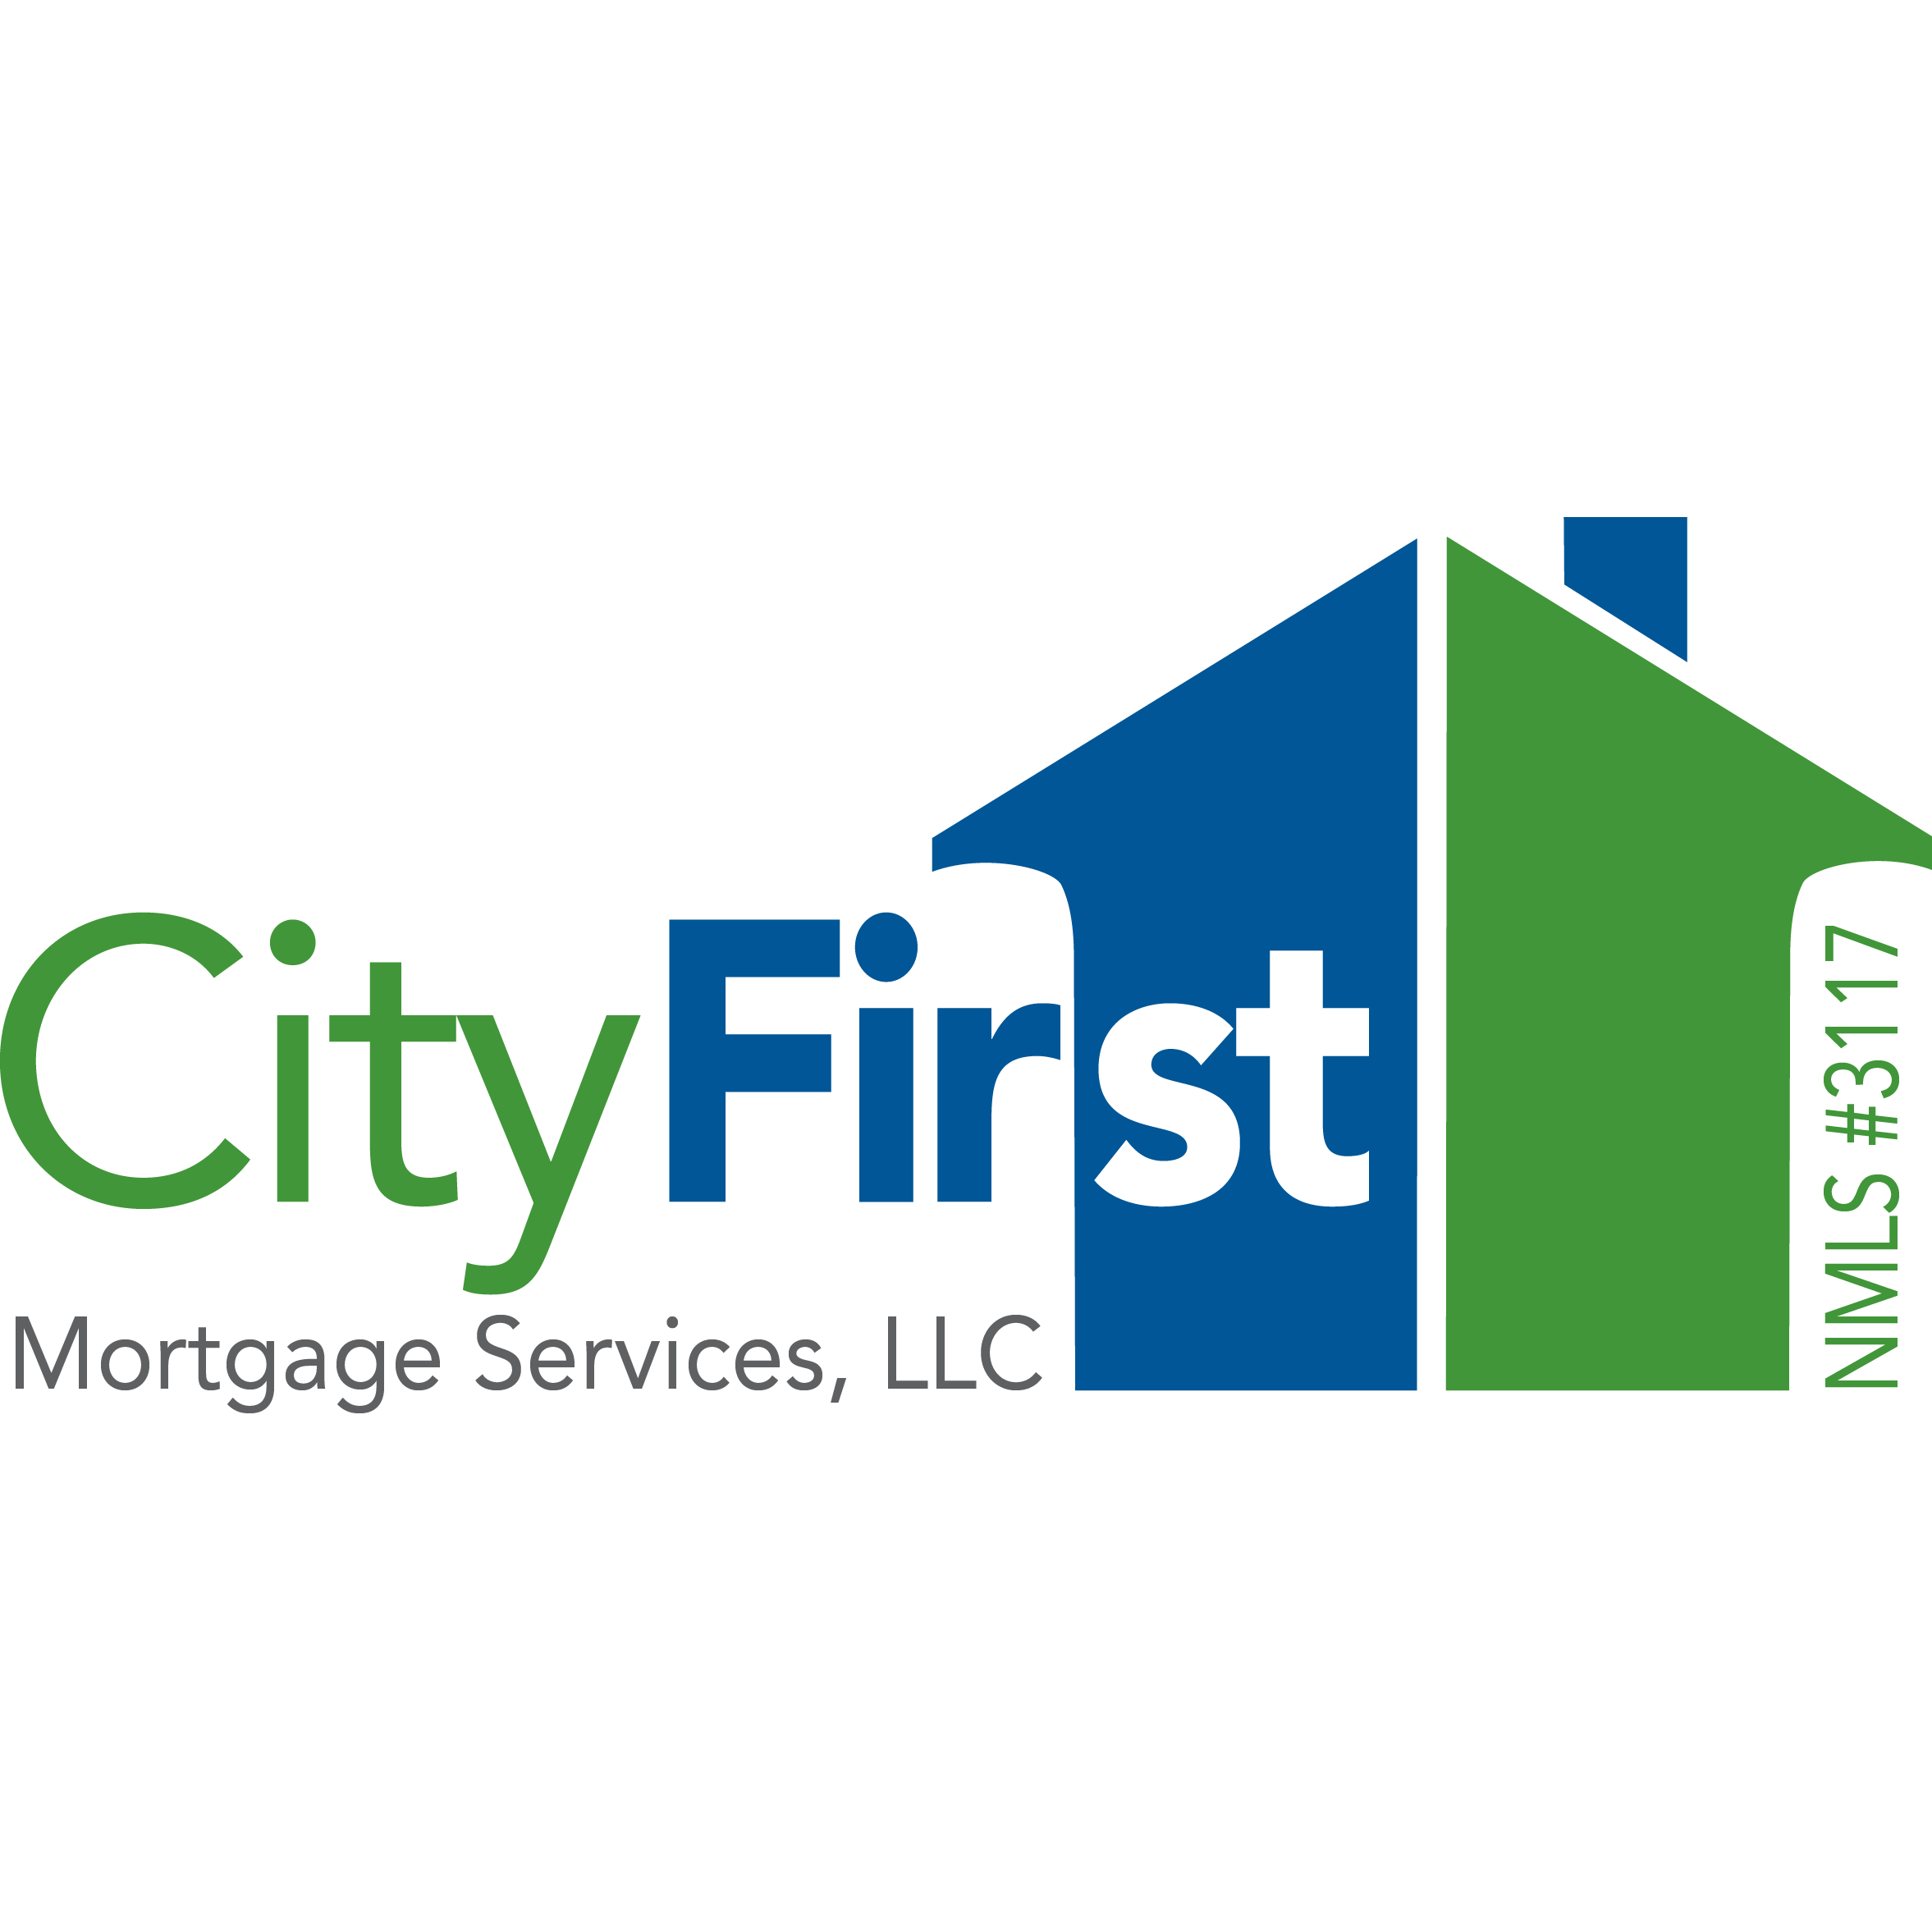 City First Mortgage Services, LLC